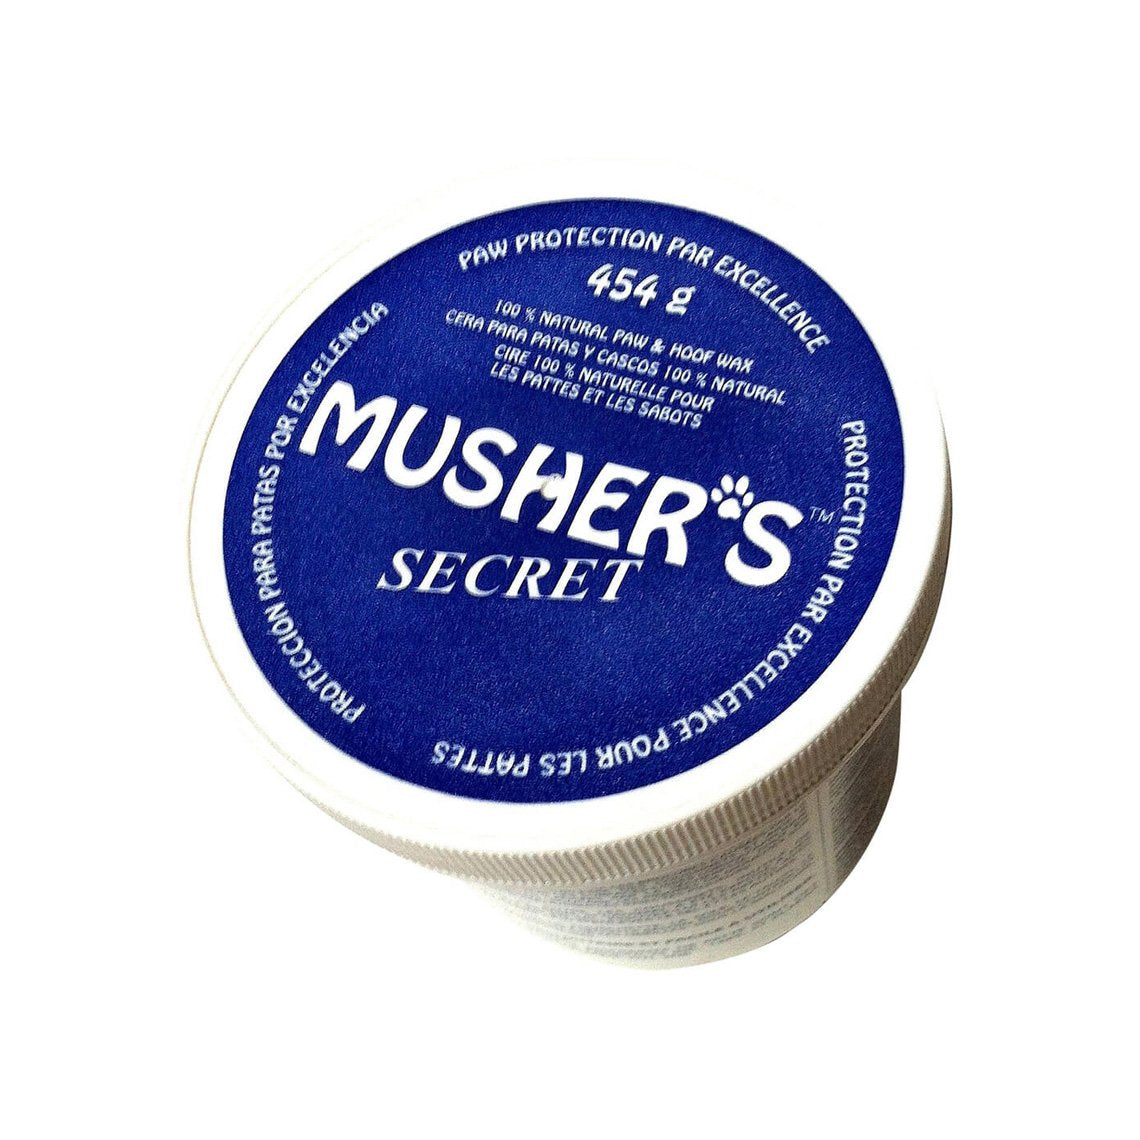 Image result for Musher's Secret